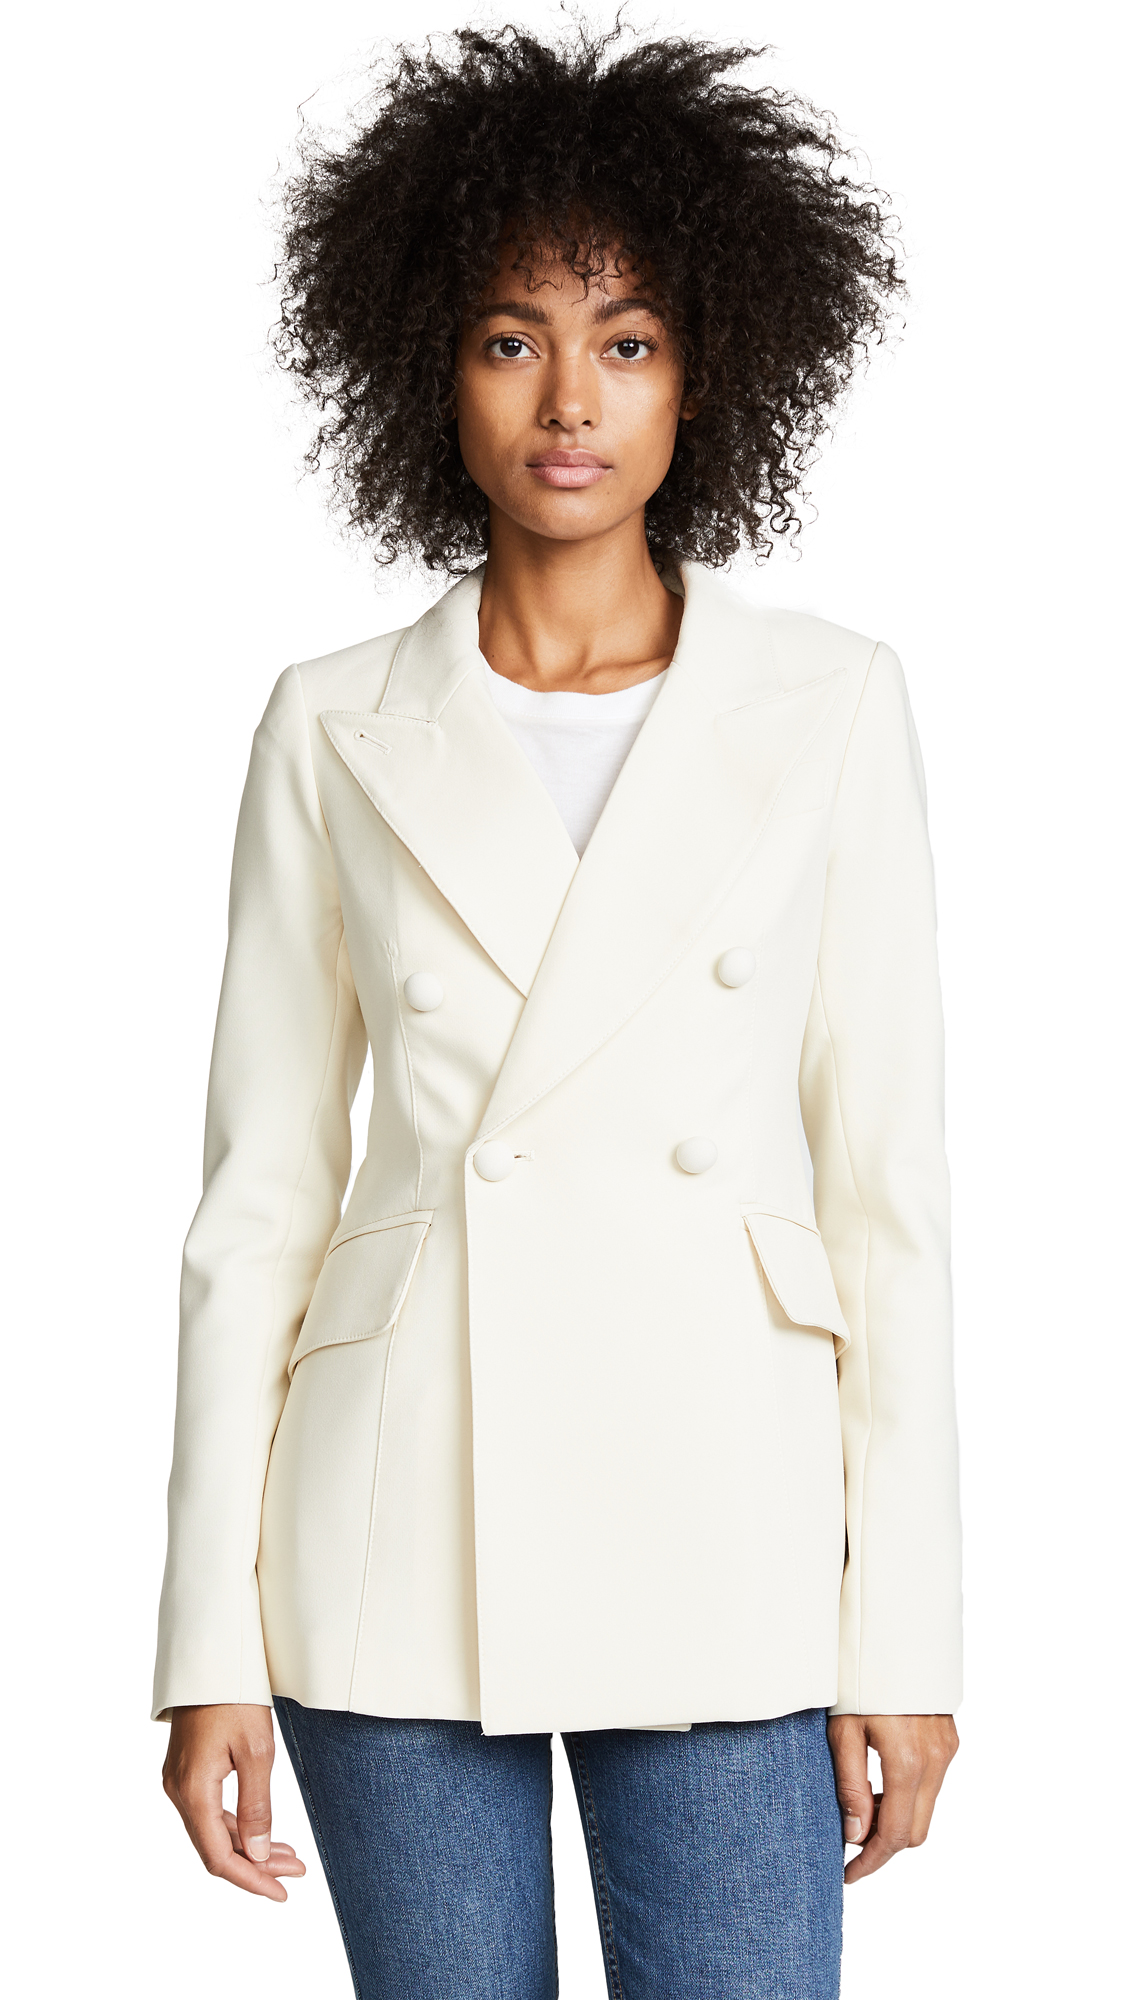 SMYTHE Wedding Blazer - Oyster